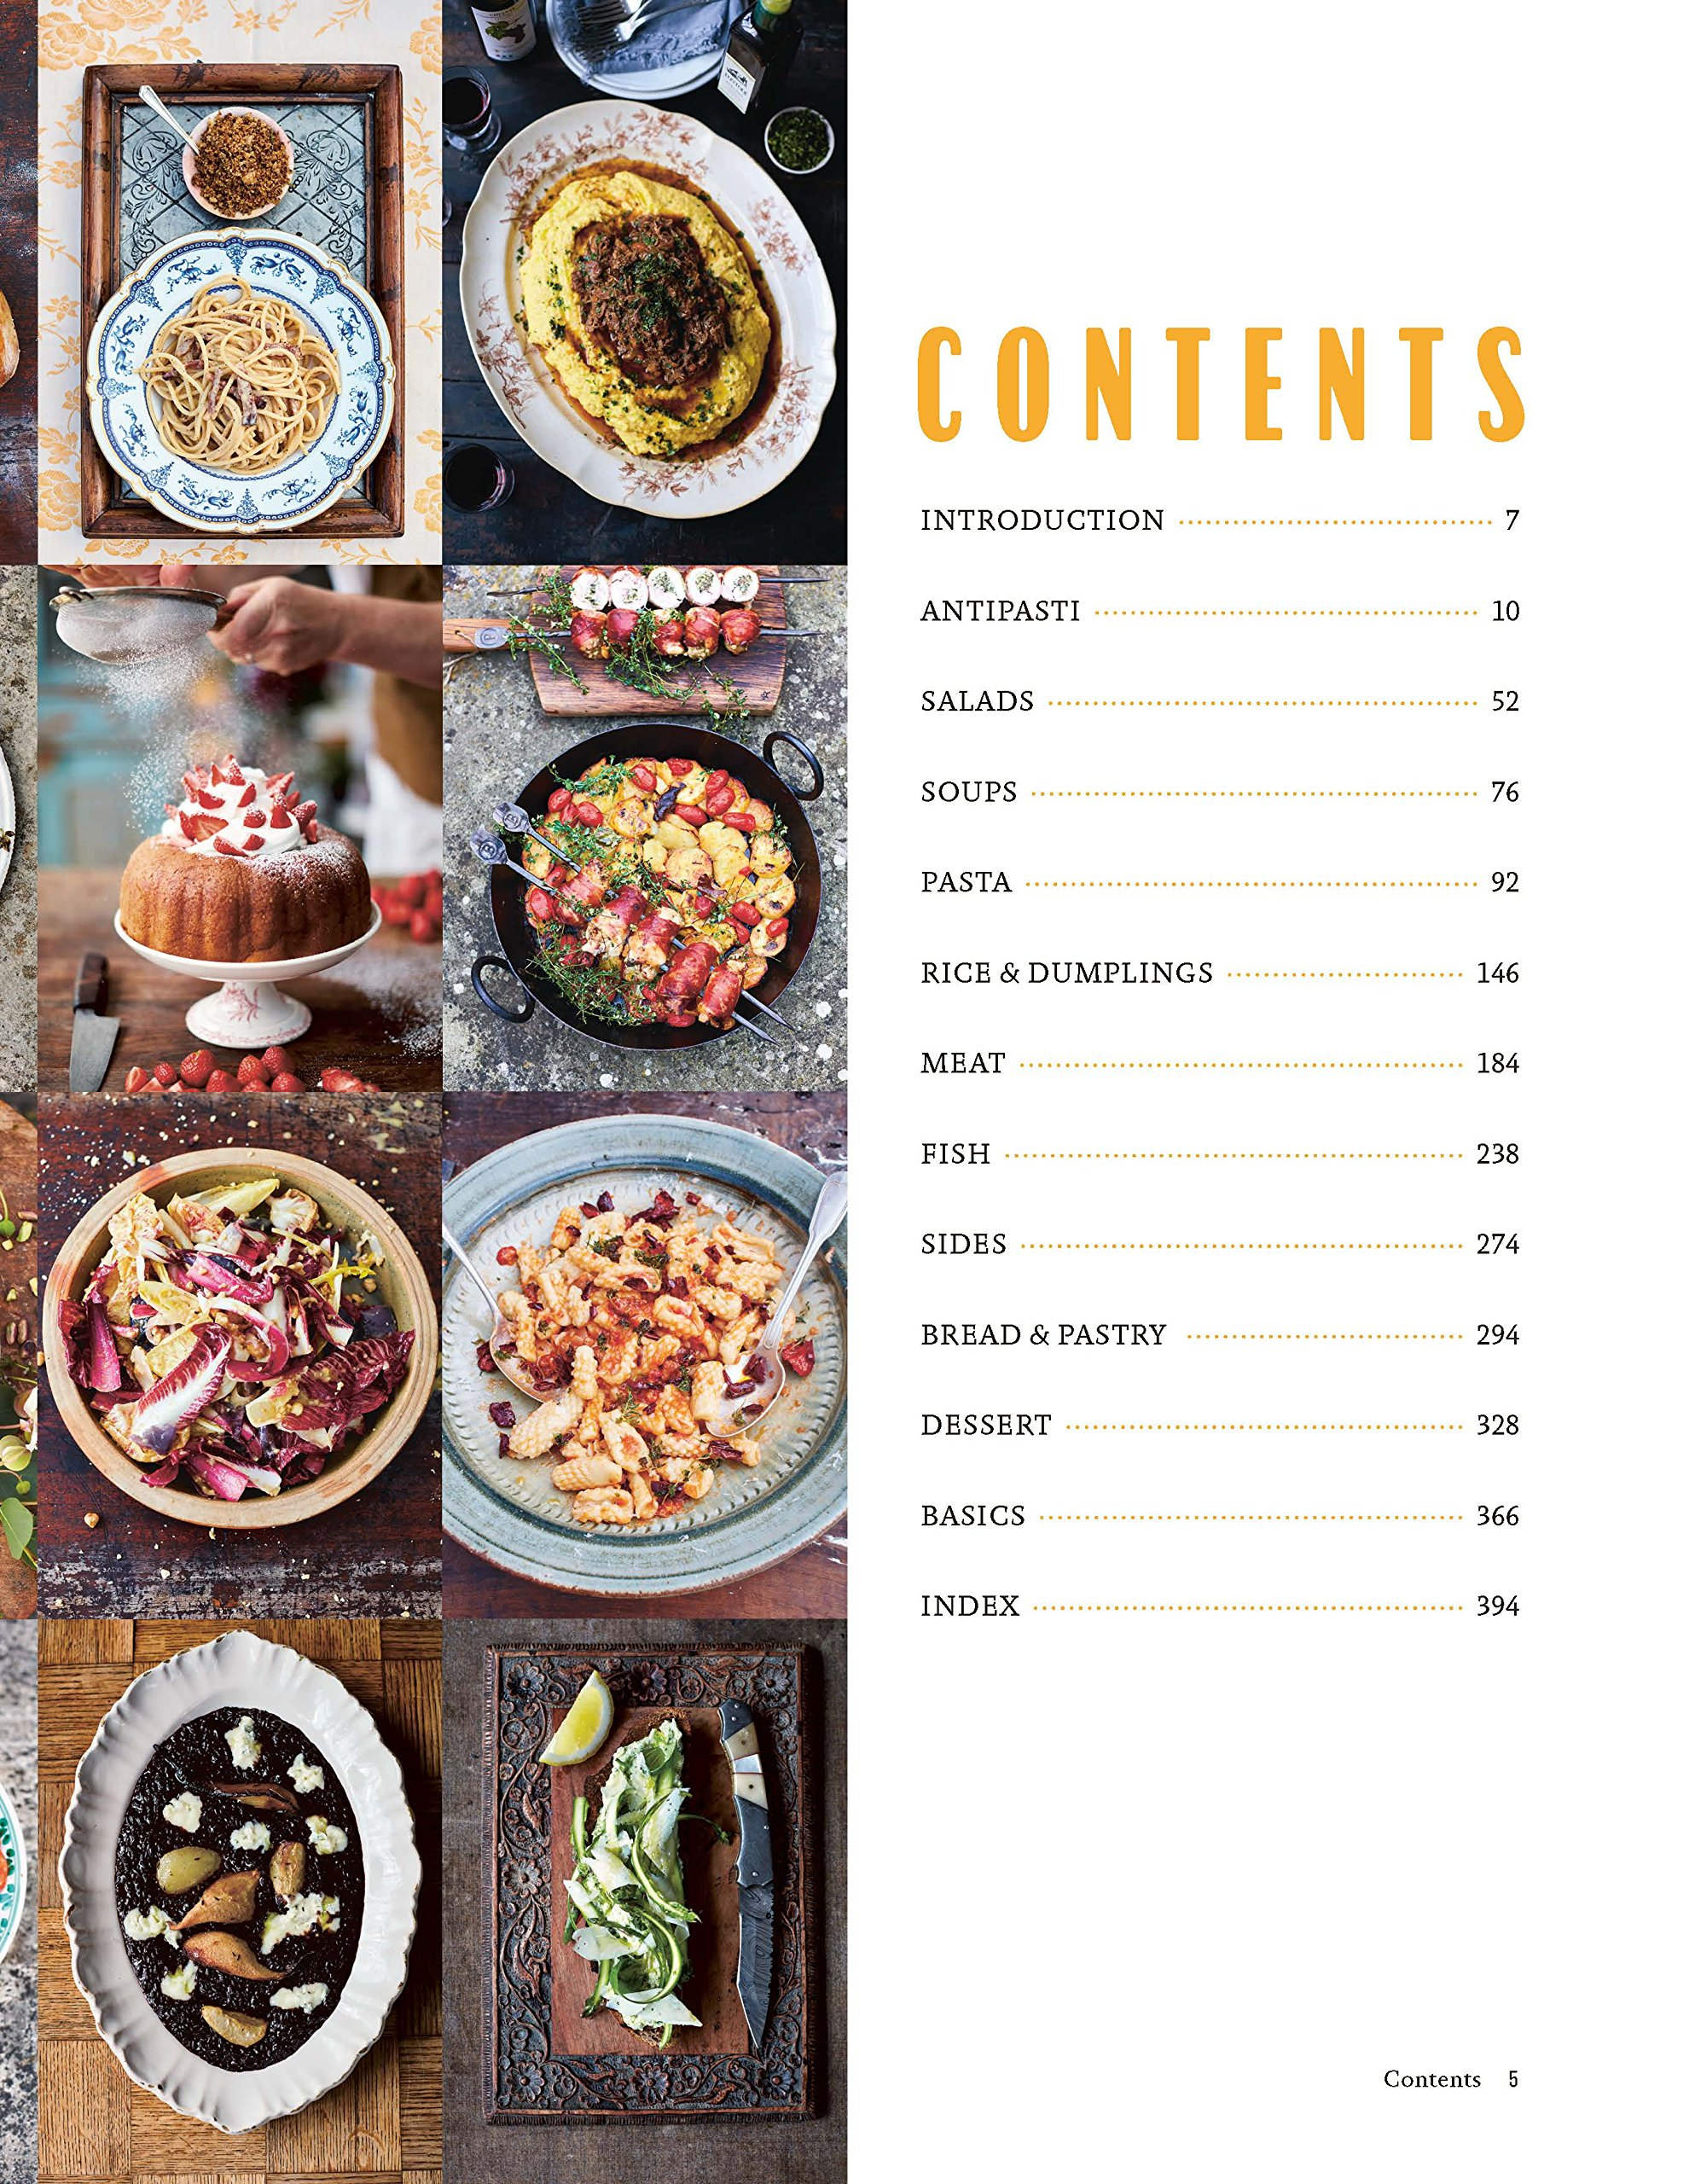 Jamie cooks italy by jamie oliver angus robertson books look inside click to expand contents forumfinder Choice Image